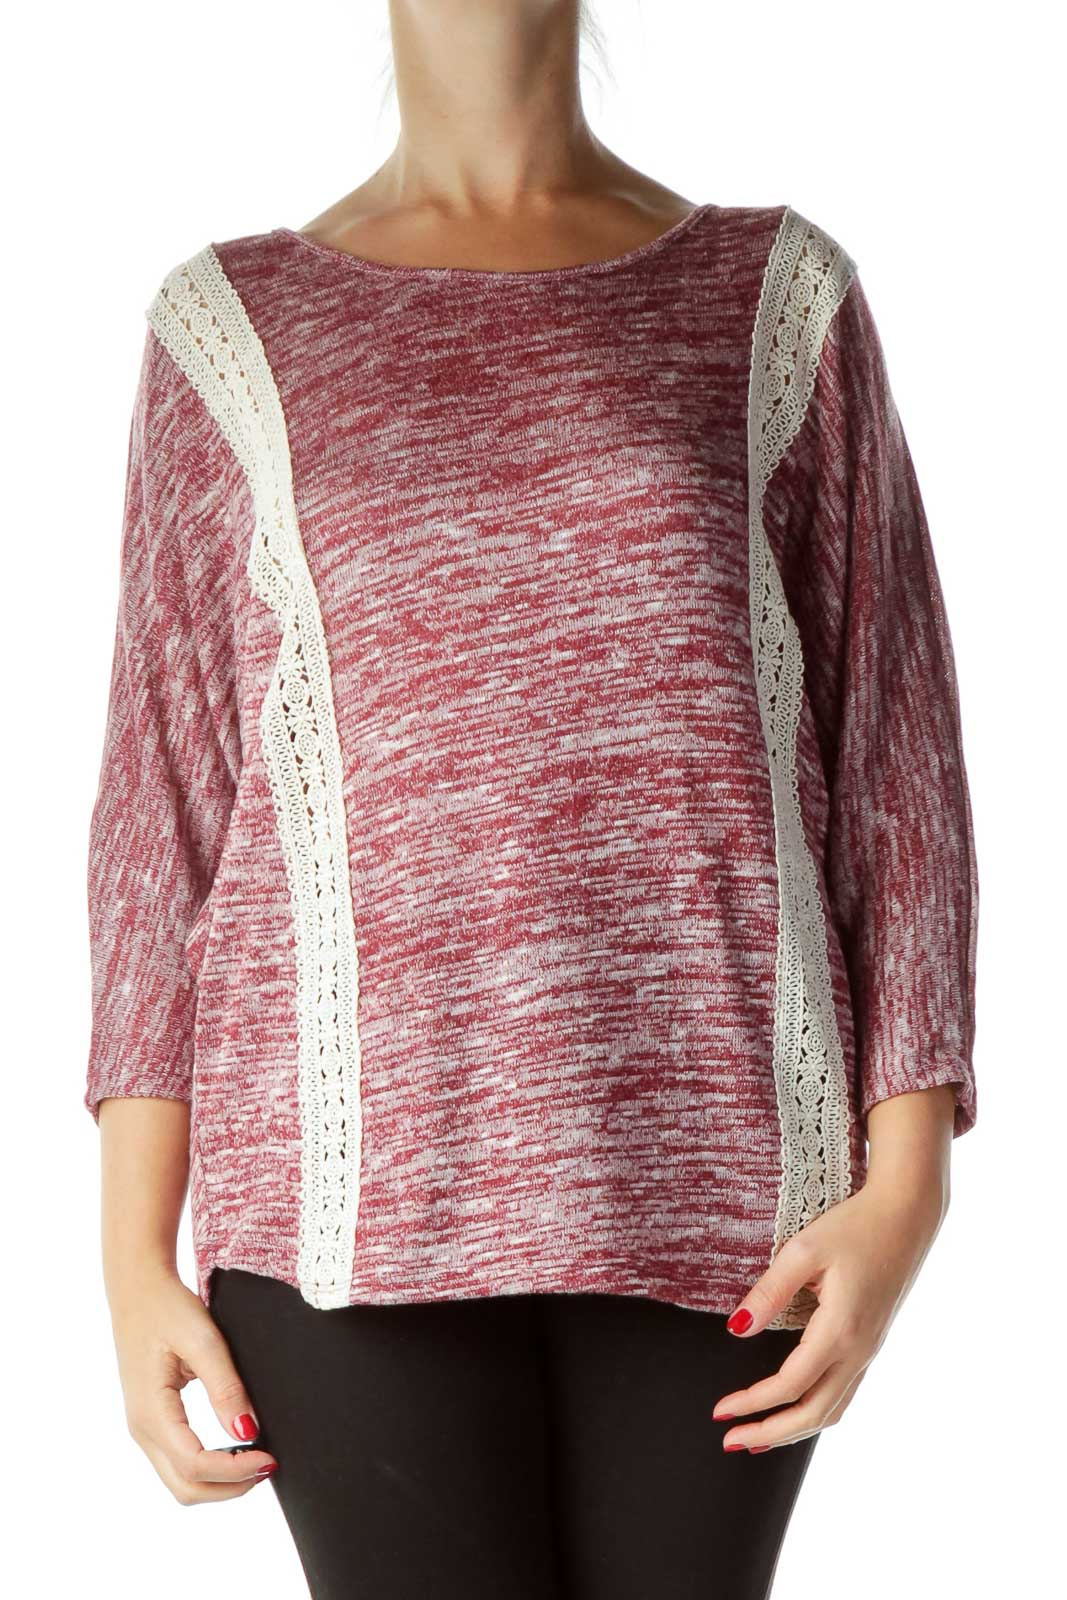 Pink Mottled Lace Detail Knit Top Front